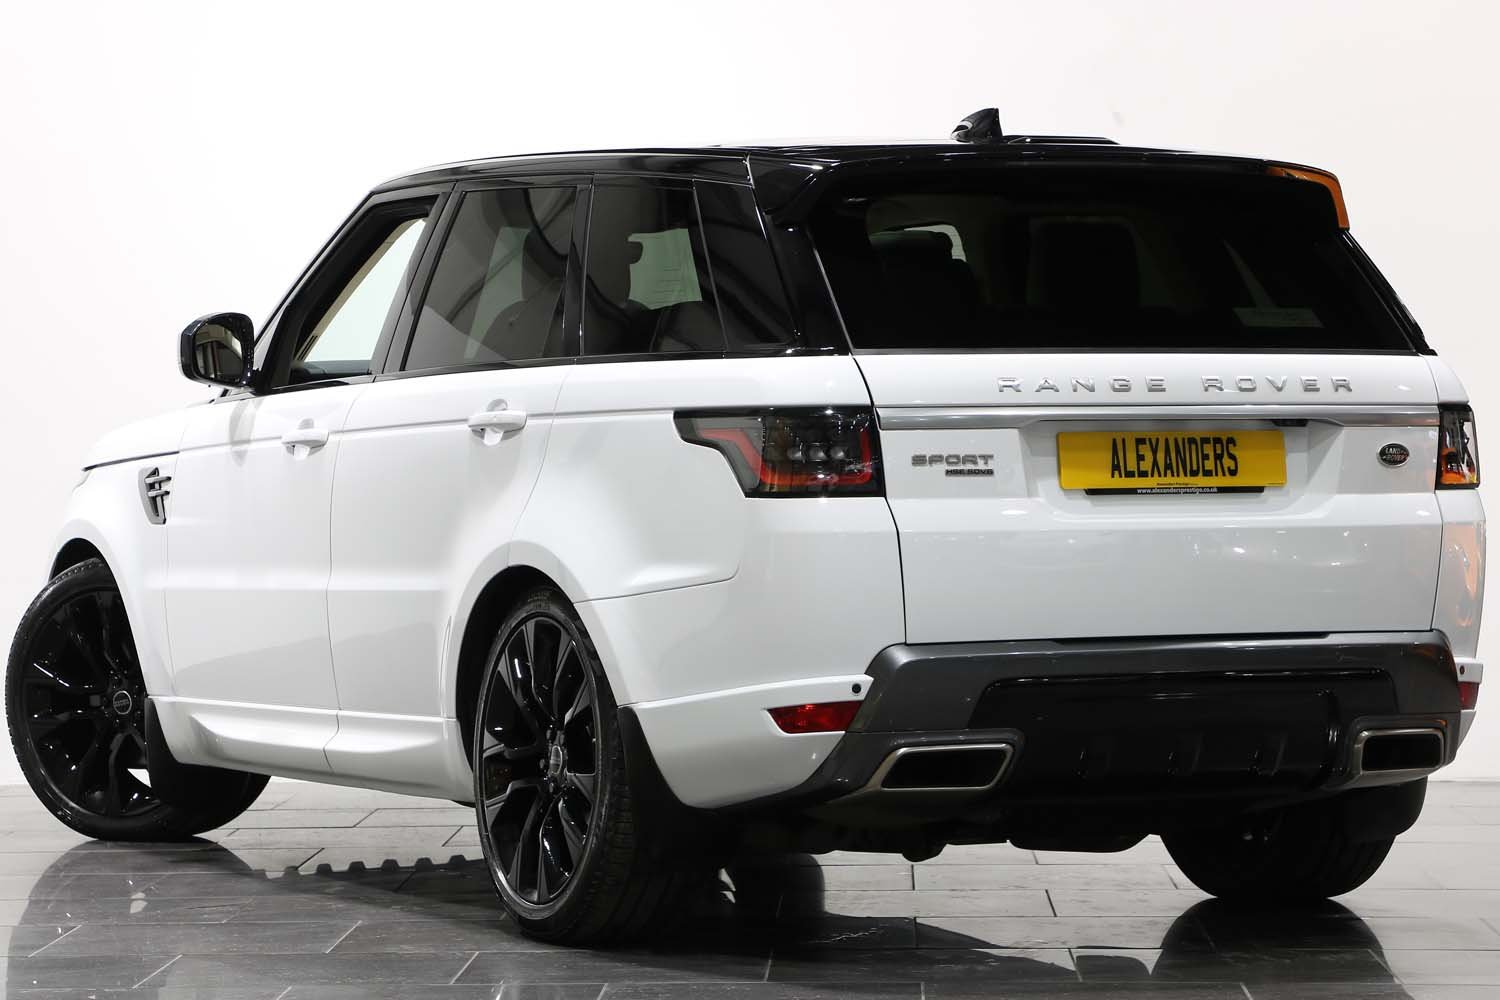 2018 68 RANGE ROVER SPORT 3.0 SDV8 HSE AUTO For Sale (picture 3 of 6)